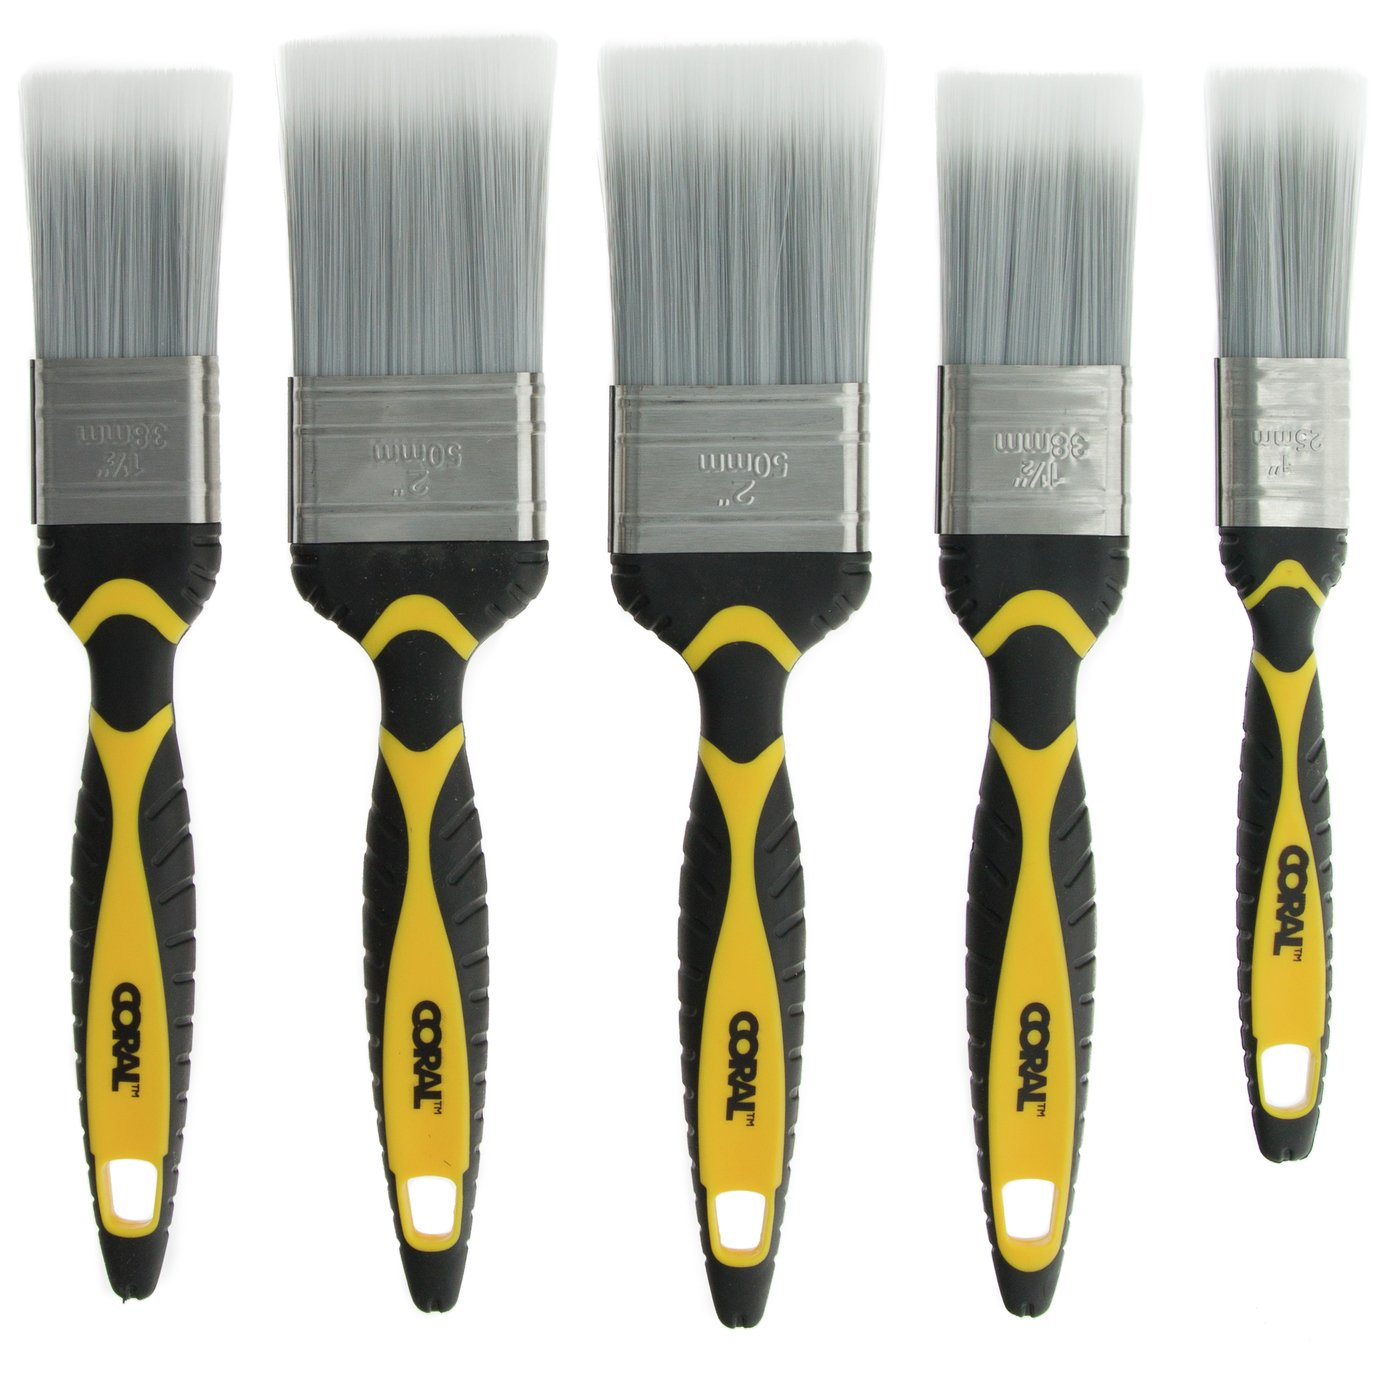 Coral Shurglide Paint Brush - Set of 5